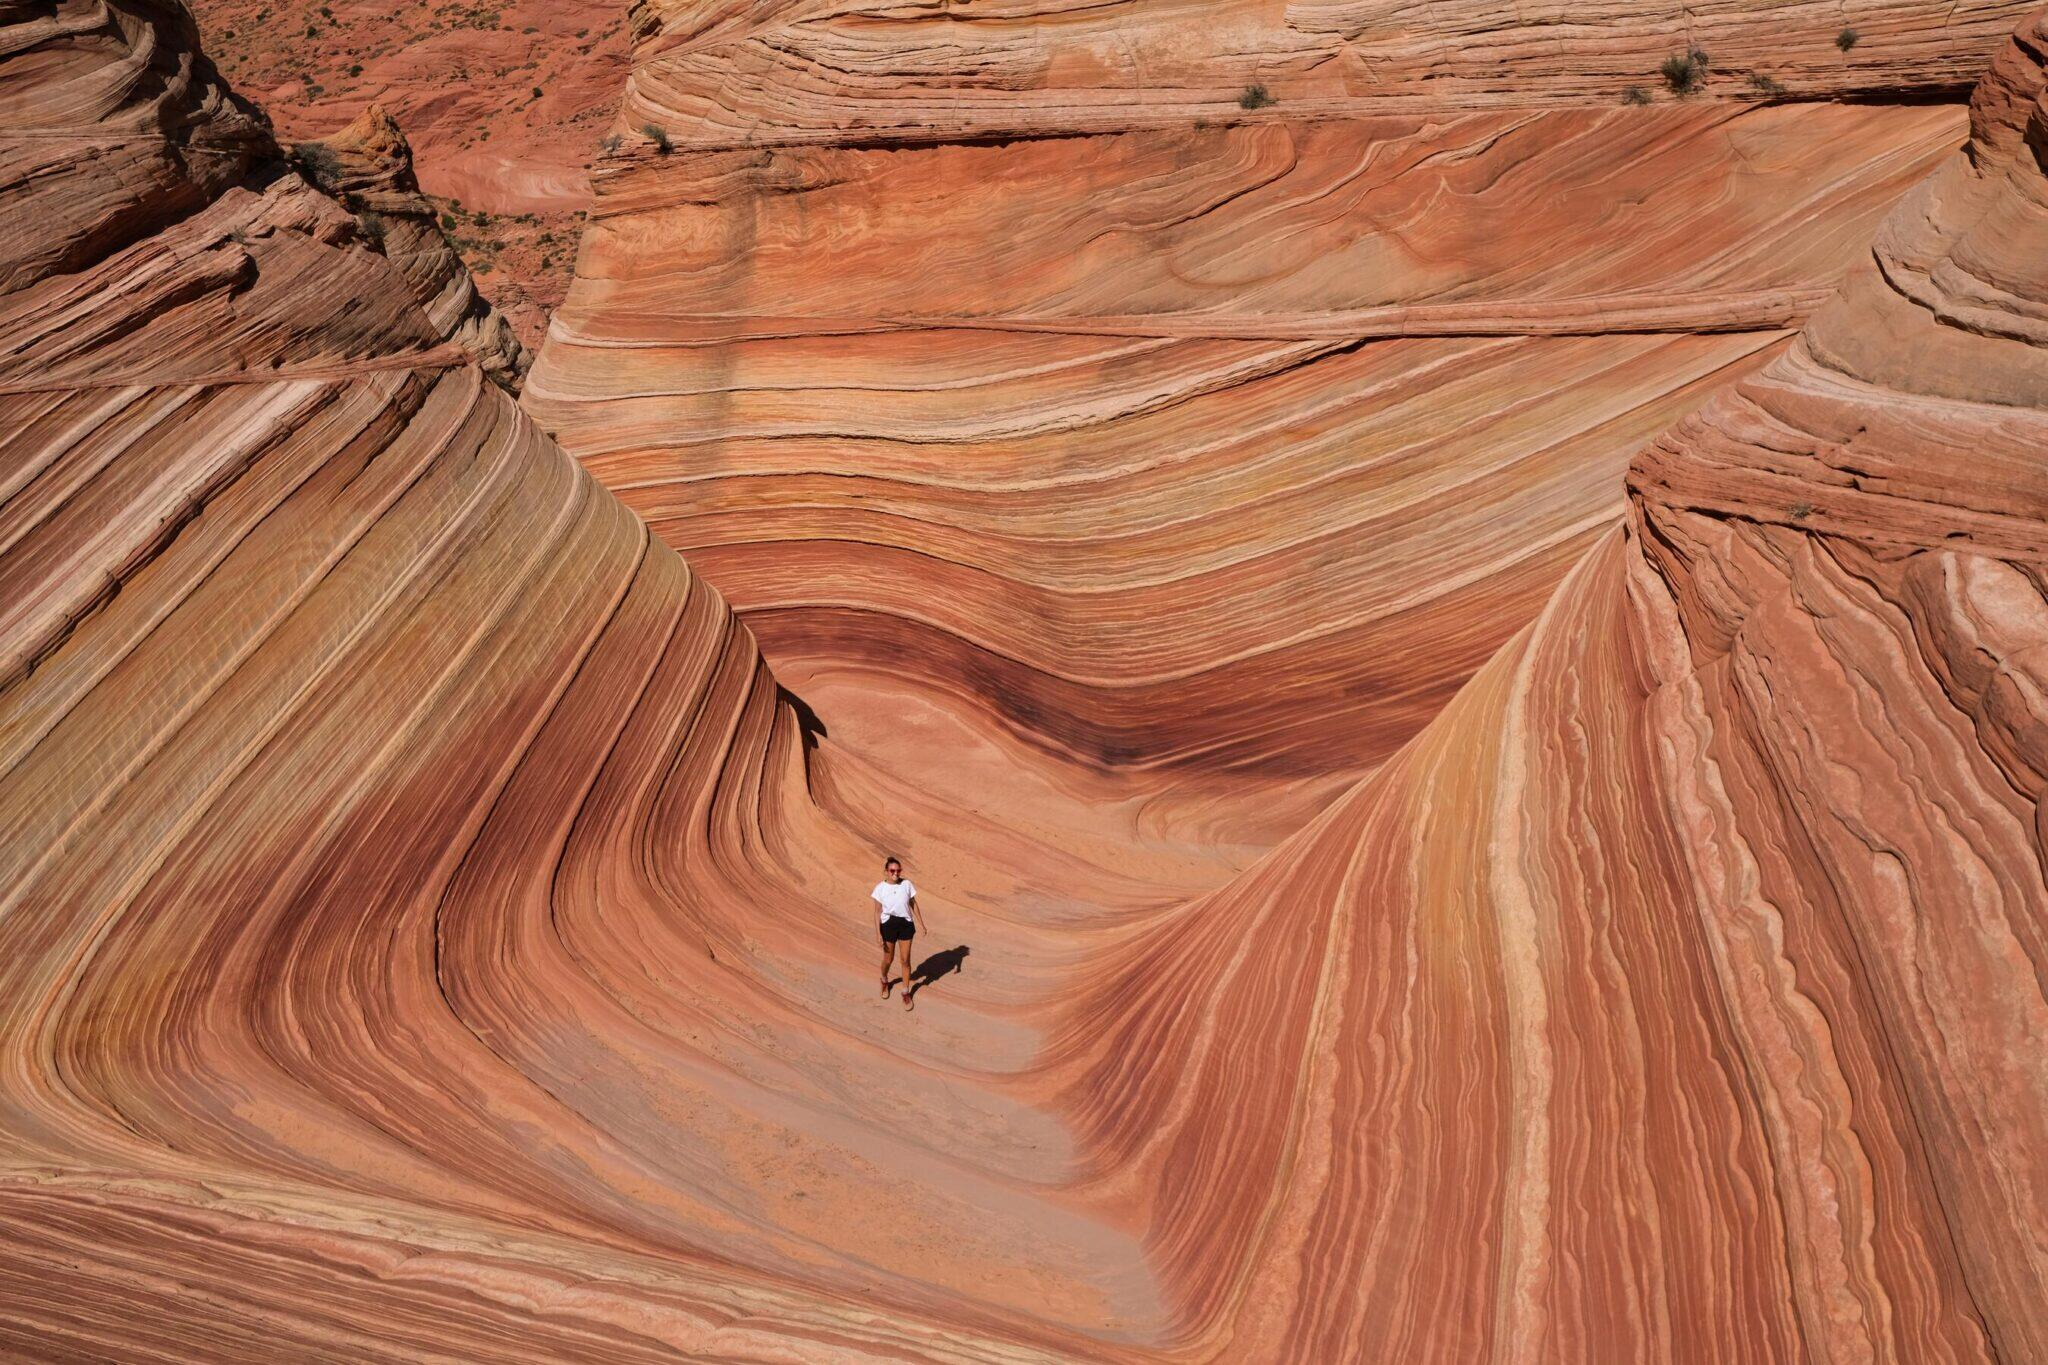 How to Hike The Wave - Utah's Untouched Trail